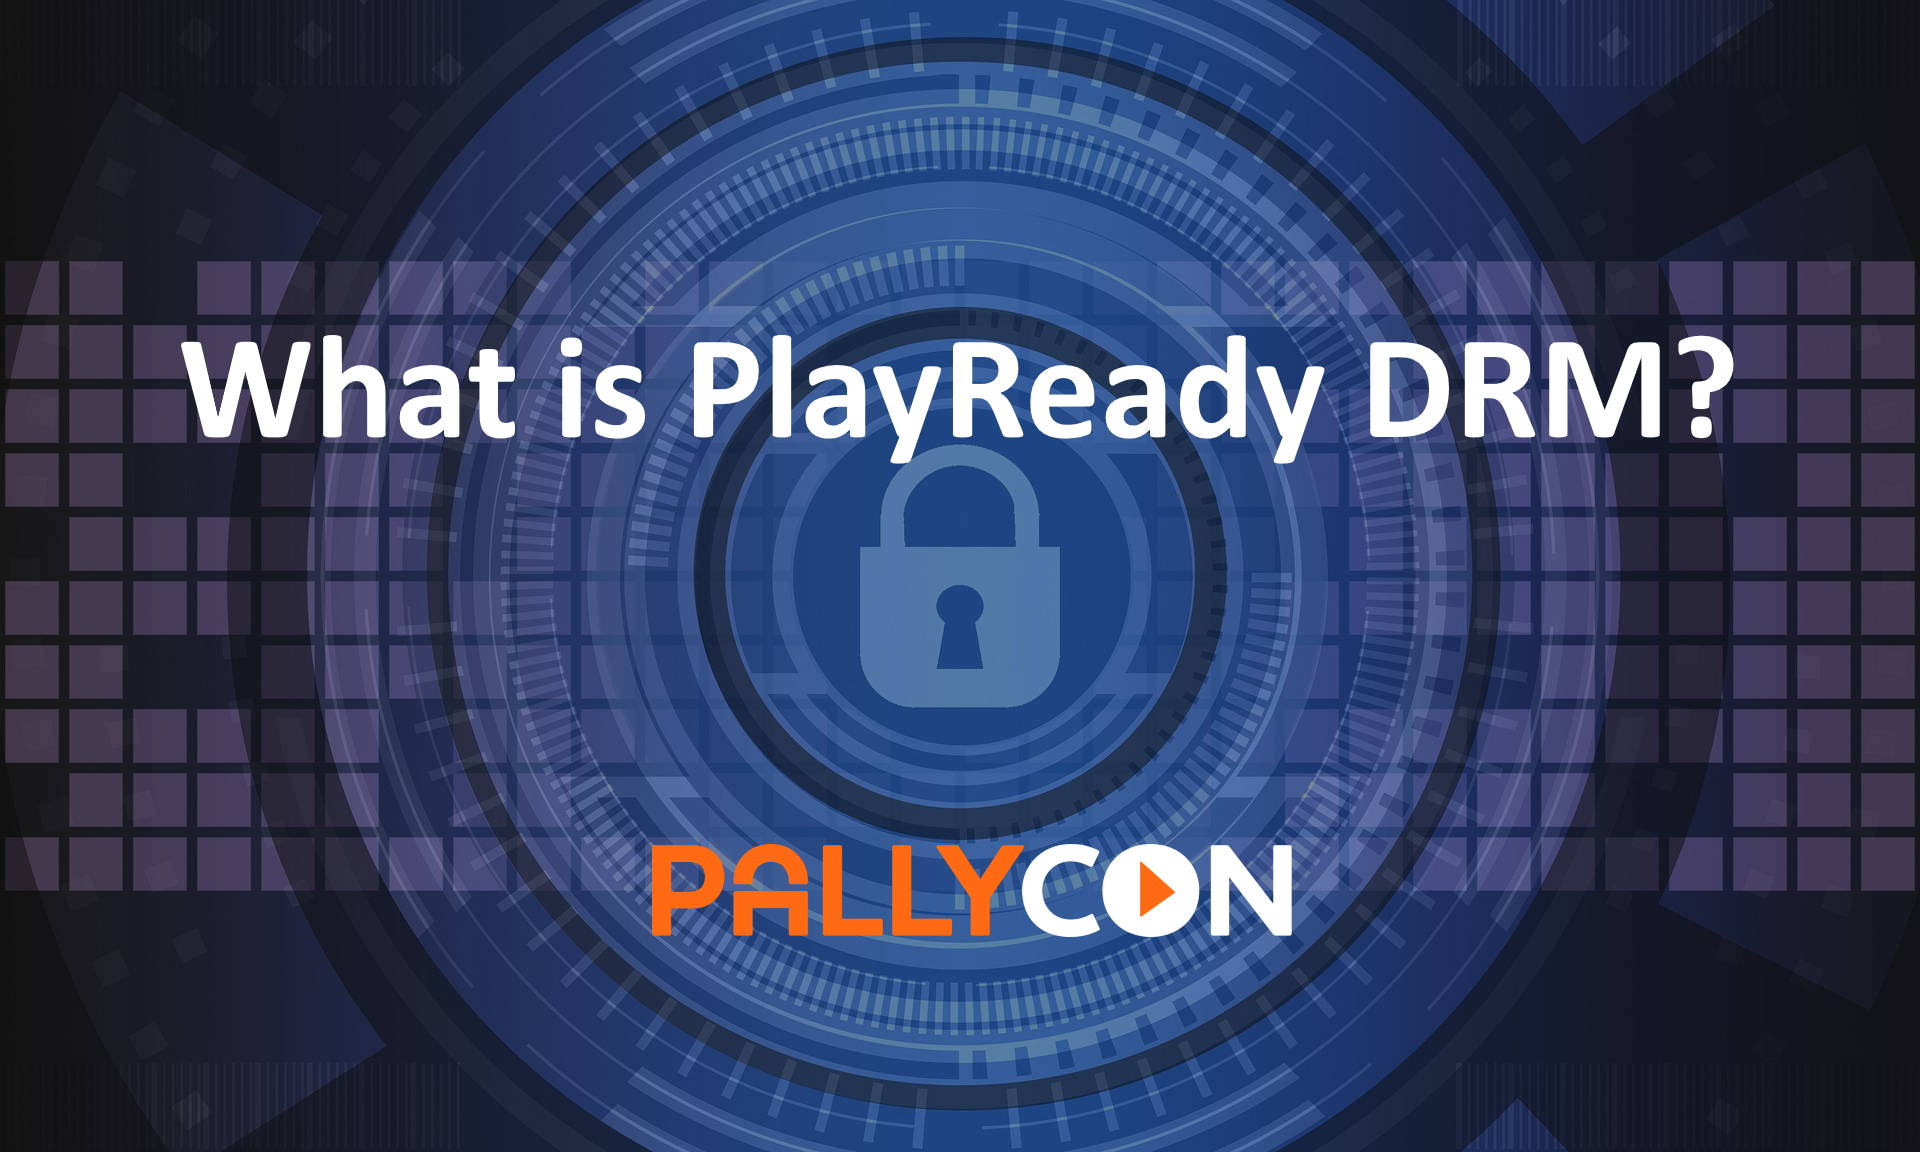 Playready Drm 5 Things To Know About Drm Technology Pallycon